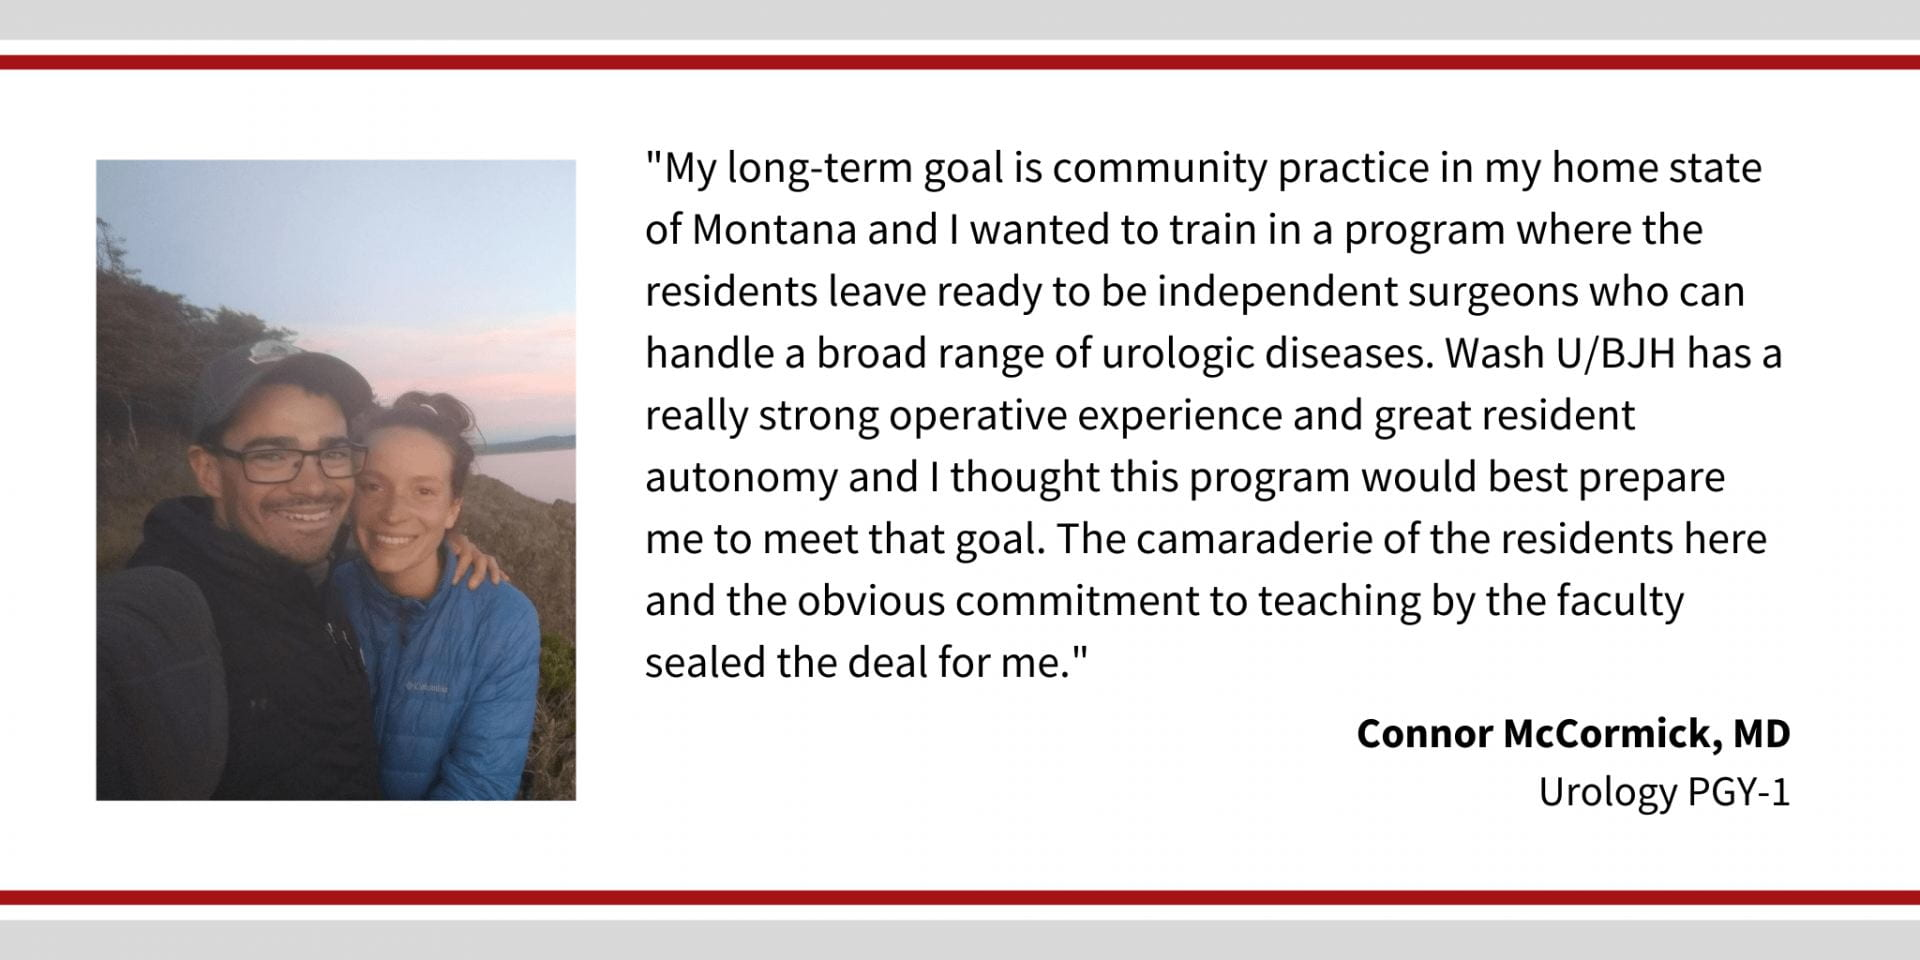 "When asked why did you choose Washington University, Connor McCormick, MD, PGY 1 Urology resident says, ""My long-term goal is community practice in my home state of Montana and I wanted to train in a program where the residents leave ready to be independent surgeons who can handle a broad range of urologic diseases. WashU/BJH has a really strong operative experience and great resident autonomy and I thought this program would best prepare me to meet that goal. The camaraderie of the residents here and the obvious commitment to teaching by the faculty sealed the deal for me."""